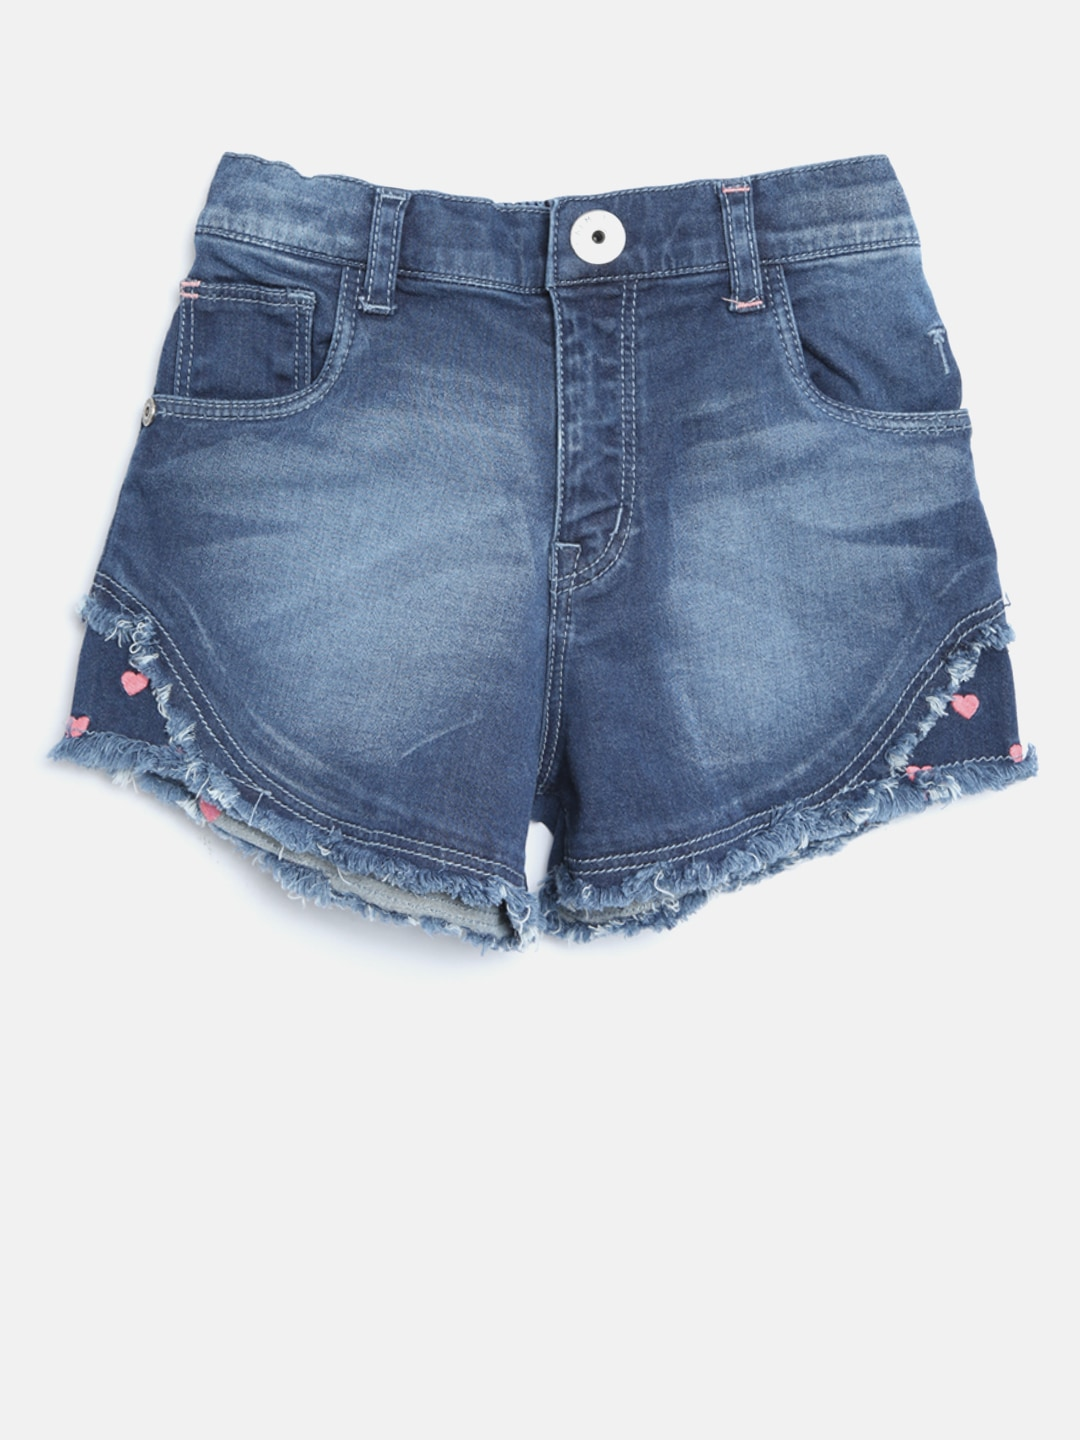 a6e5e25d5 Buy VITAMINS Girls Black Washed Distressed Denim Shorts - Shorts for ...